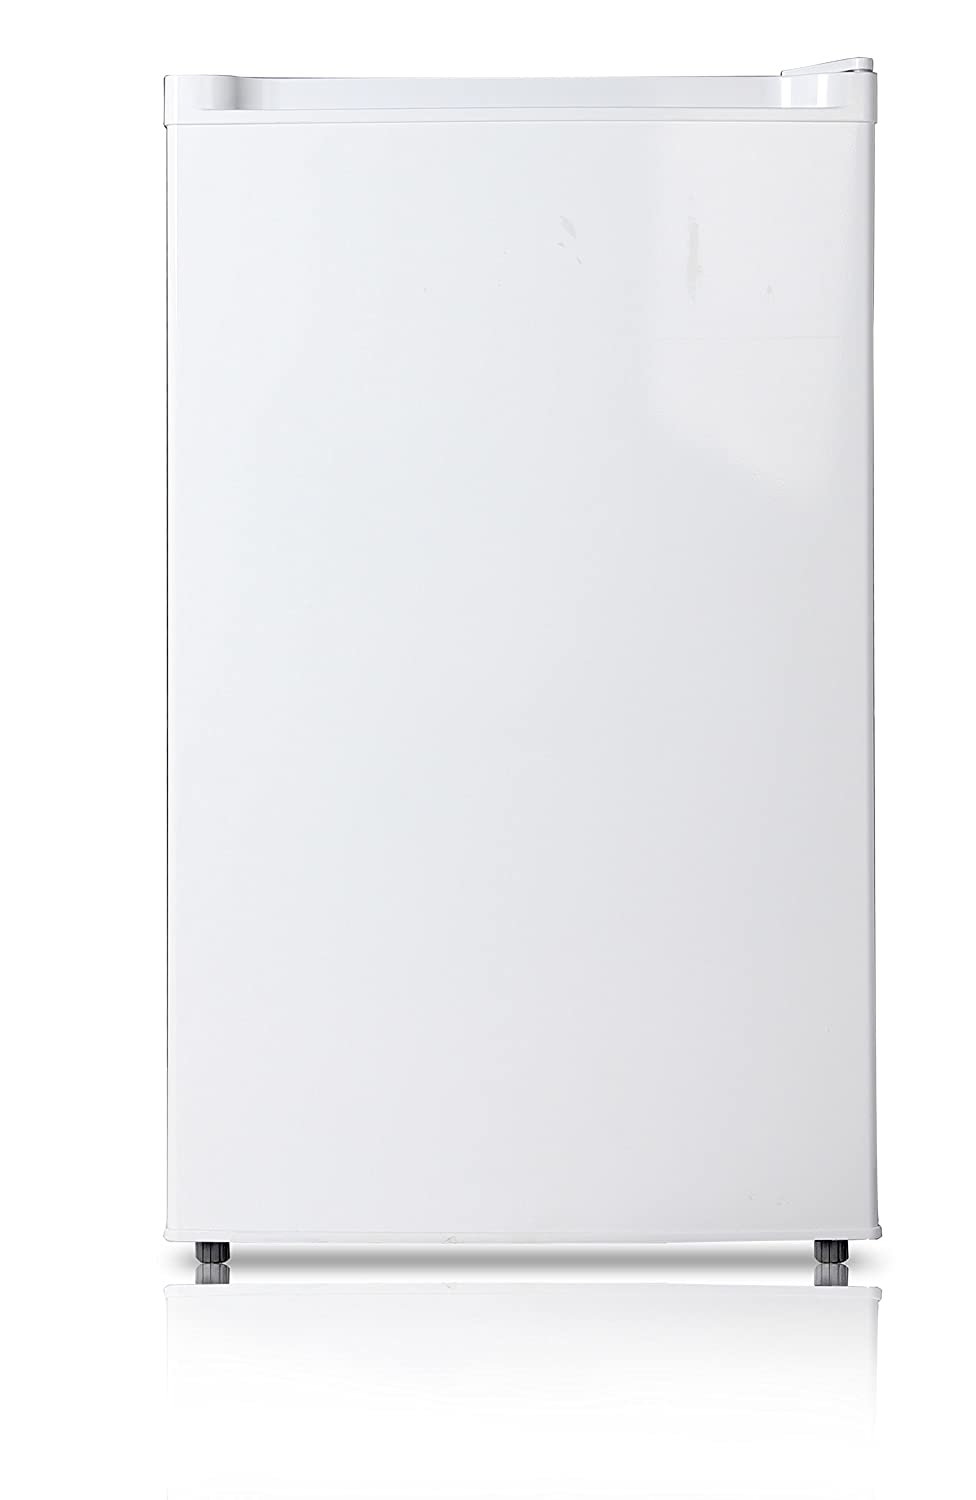 Midea WHS-109FW1 Upright Freezer 3.0 Cubic Feet White